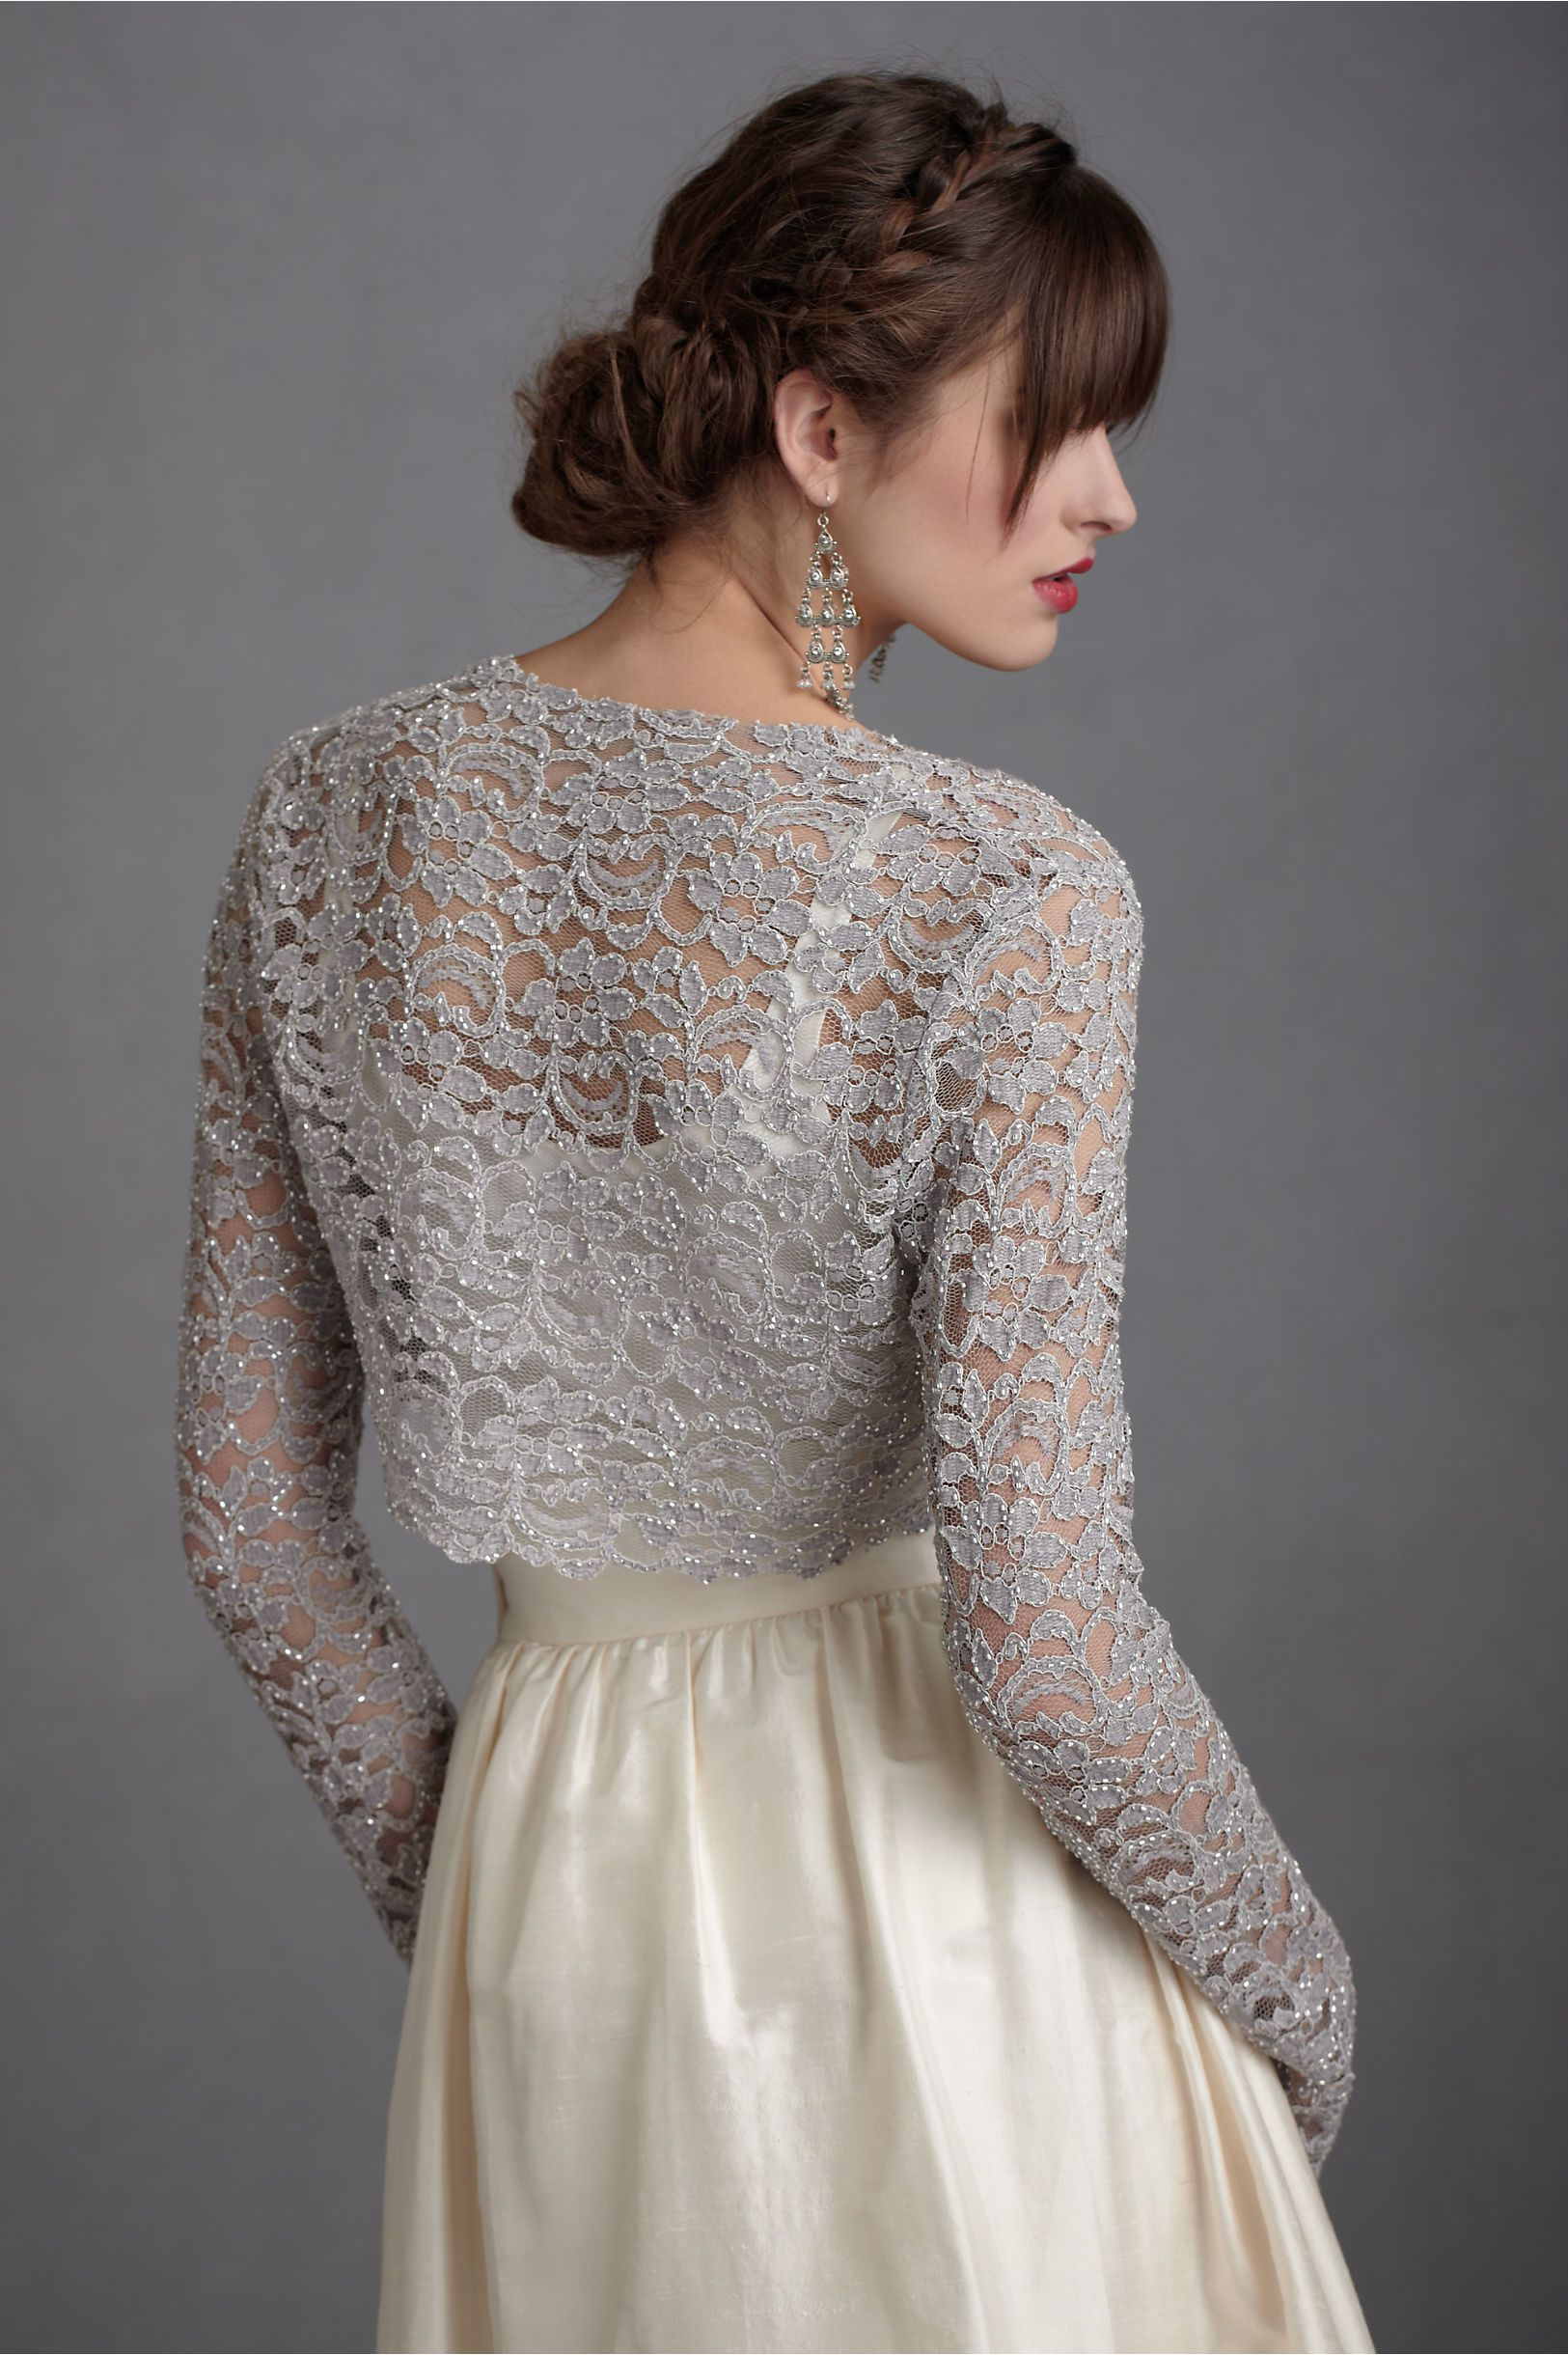 Lady grey shrug from bhldn clothes i love pinterest for Sweater over wedding dress